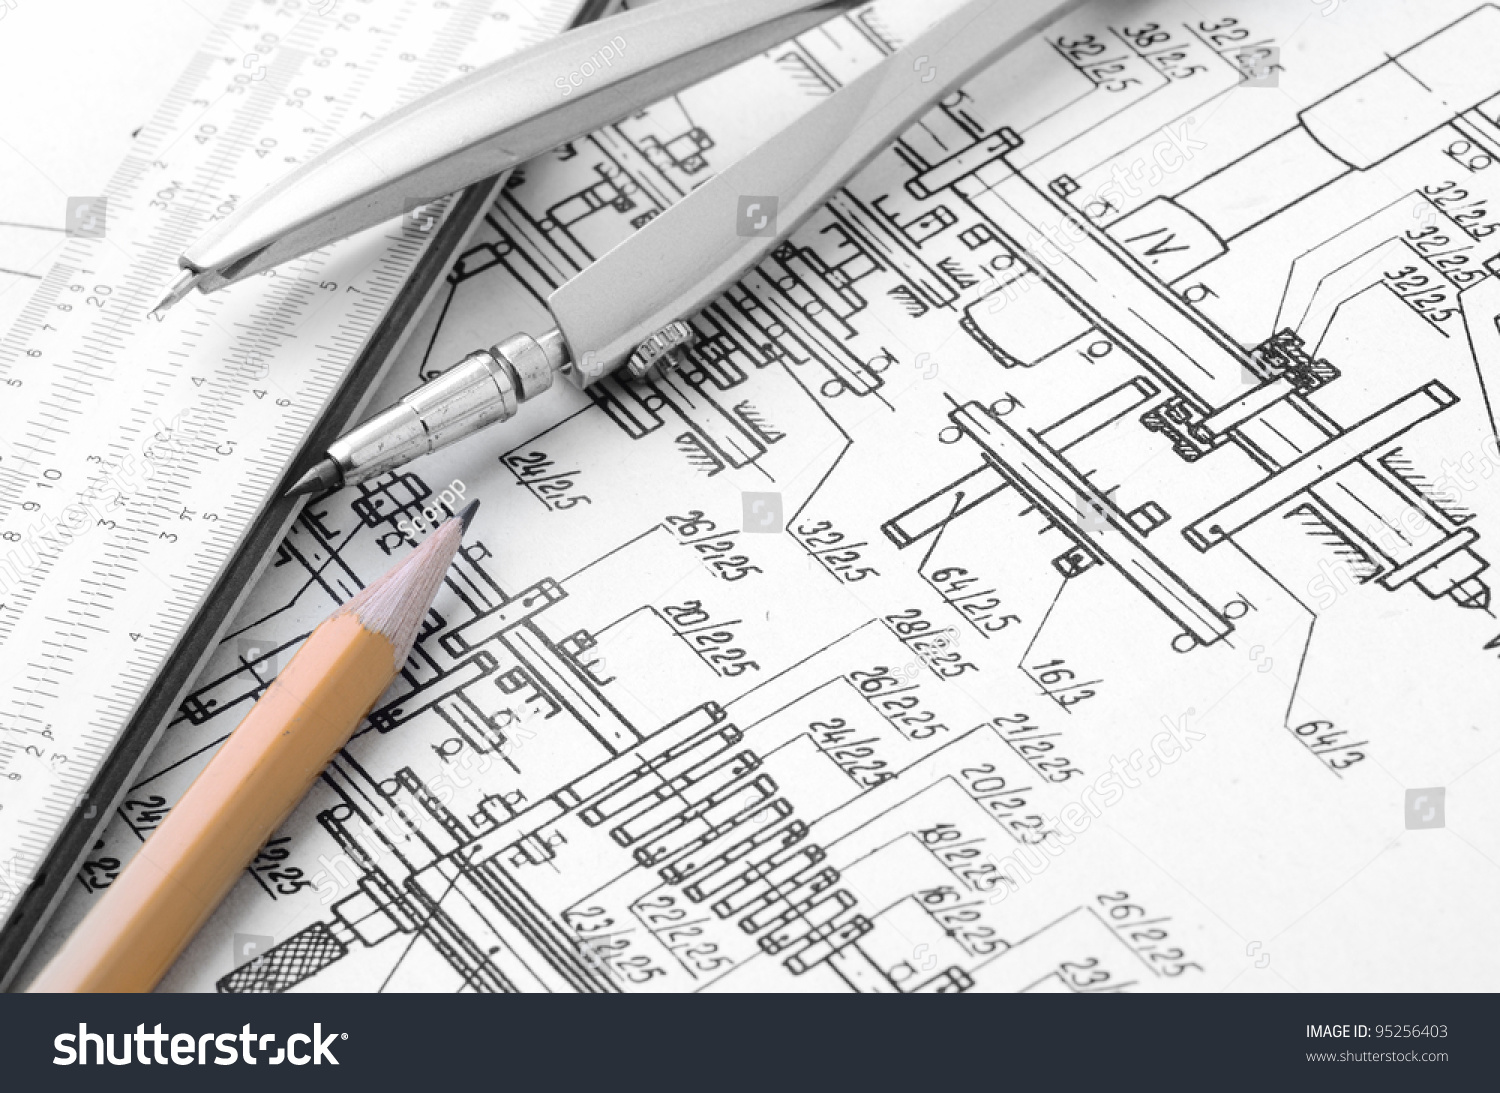 drawing tools. Industrial Drawing Detail Several Tools Stock Photo (Royalty Free) 95256403 - Shutterstock